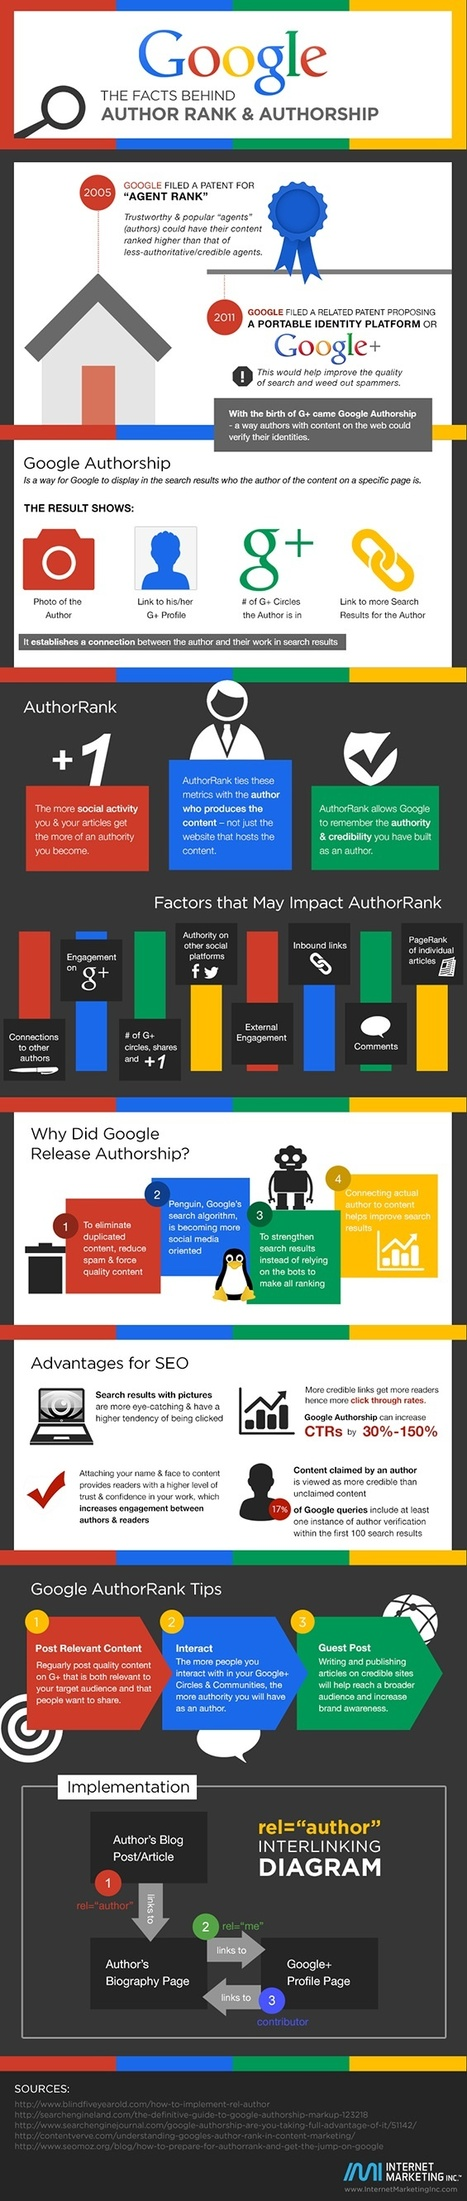 Benefits of Google Authorship for You and Your Business [INFOGRAPHIC] | MarketingHits | Scoop.it